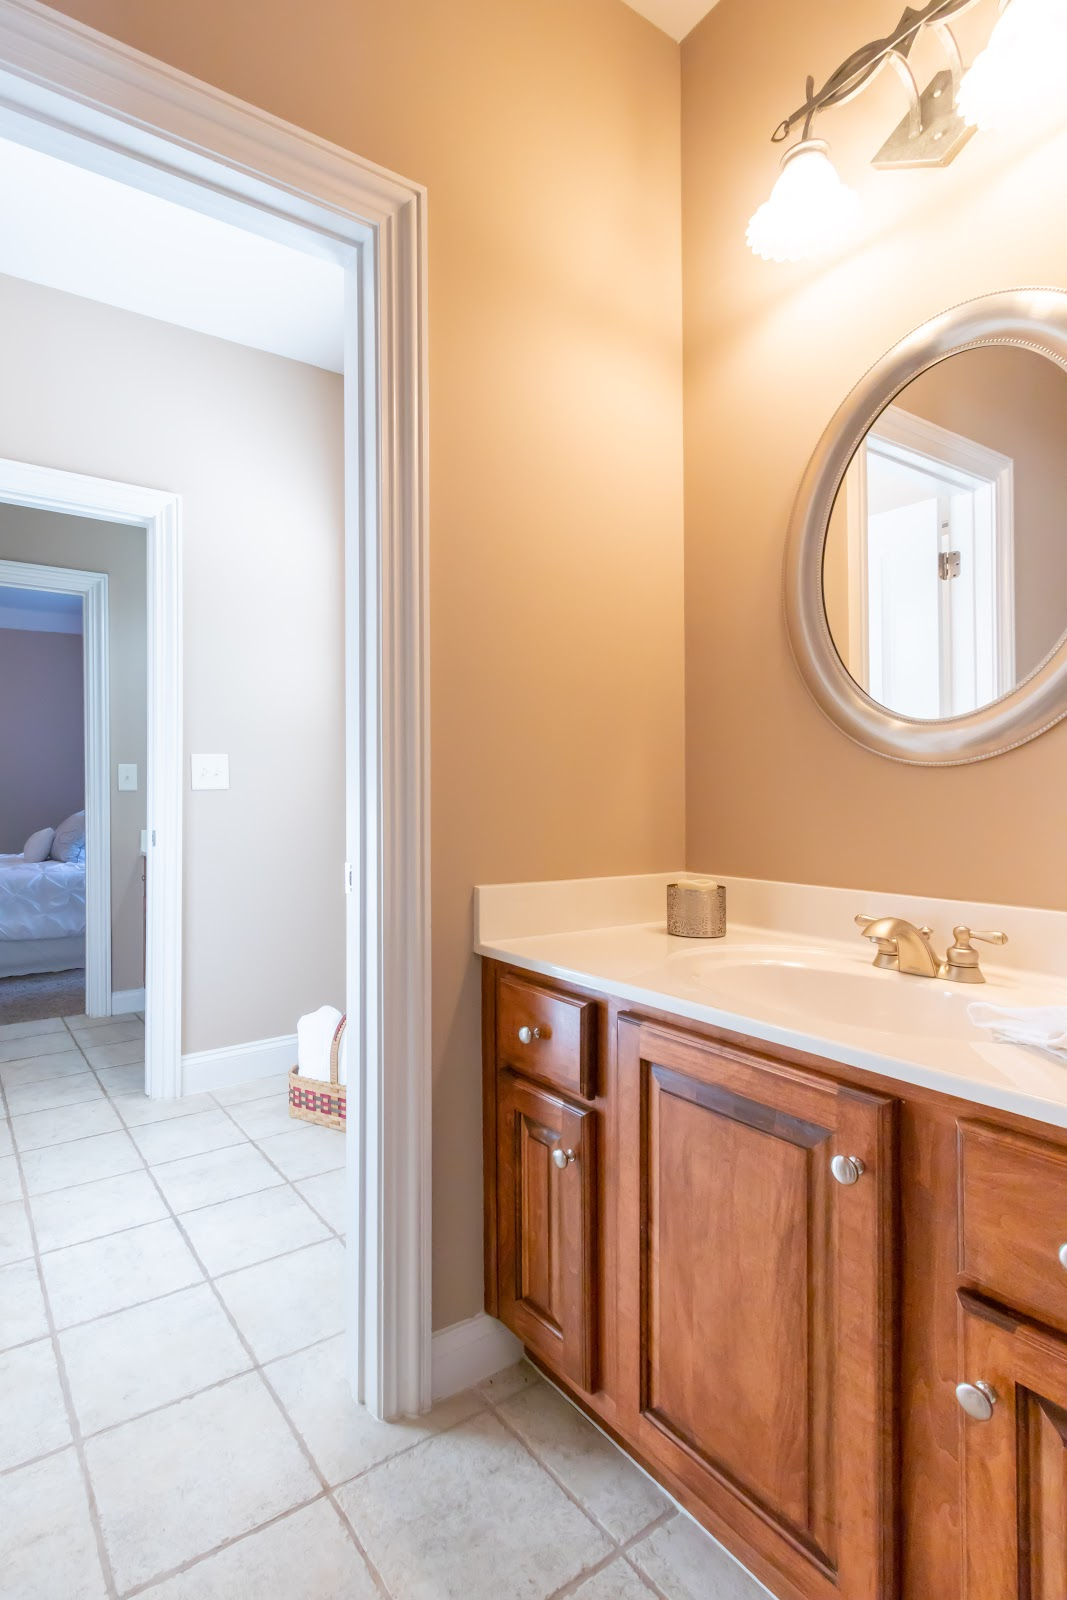 When staging a bathroom, declutter countertops. Only stage with a decorative item or two.